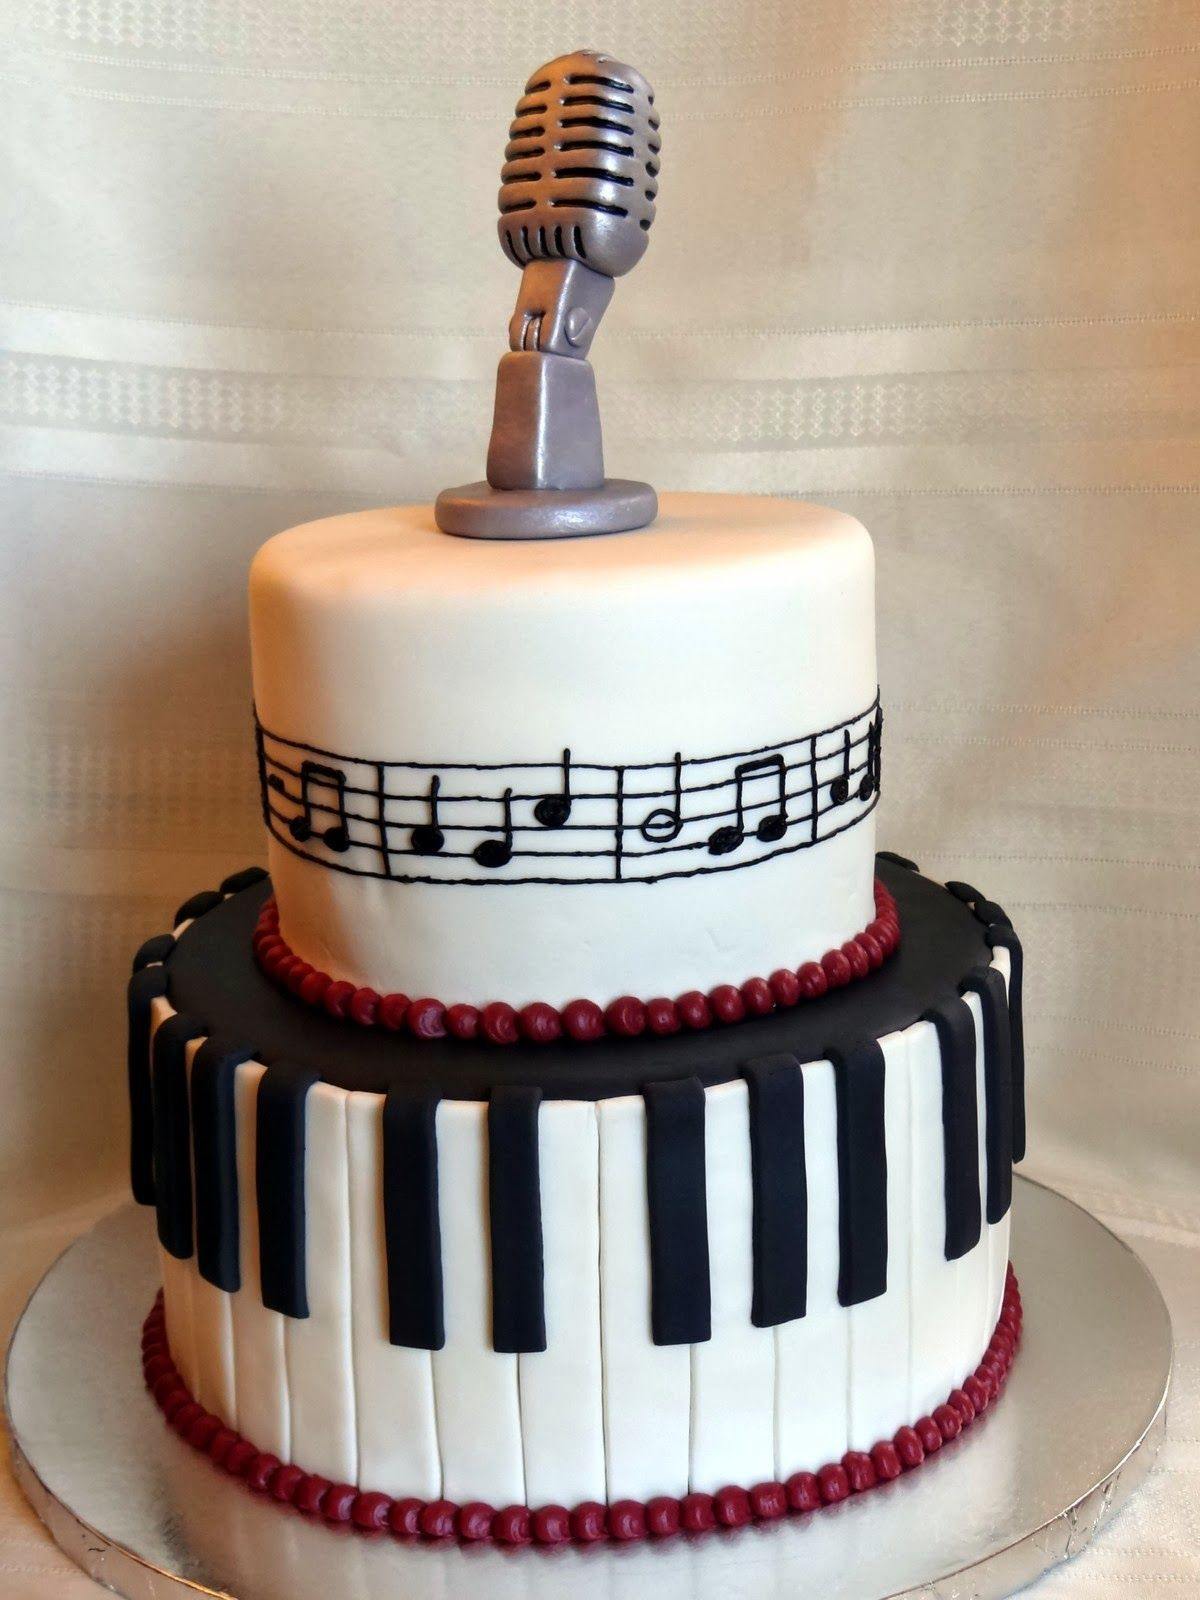 tiers of joy cakery music cake with keyboard microphone music microphone cupcake toppers edible also turner microphone wiring [ 1200 x 1600 Pixel ]